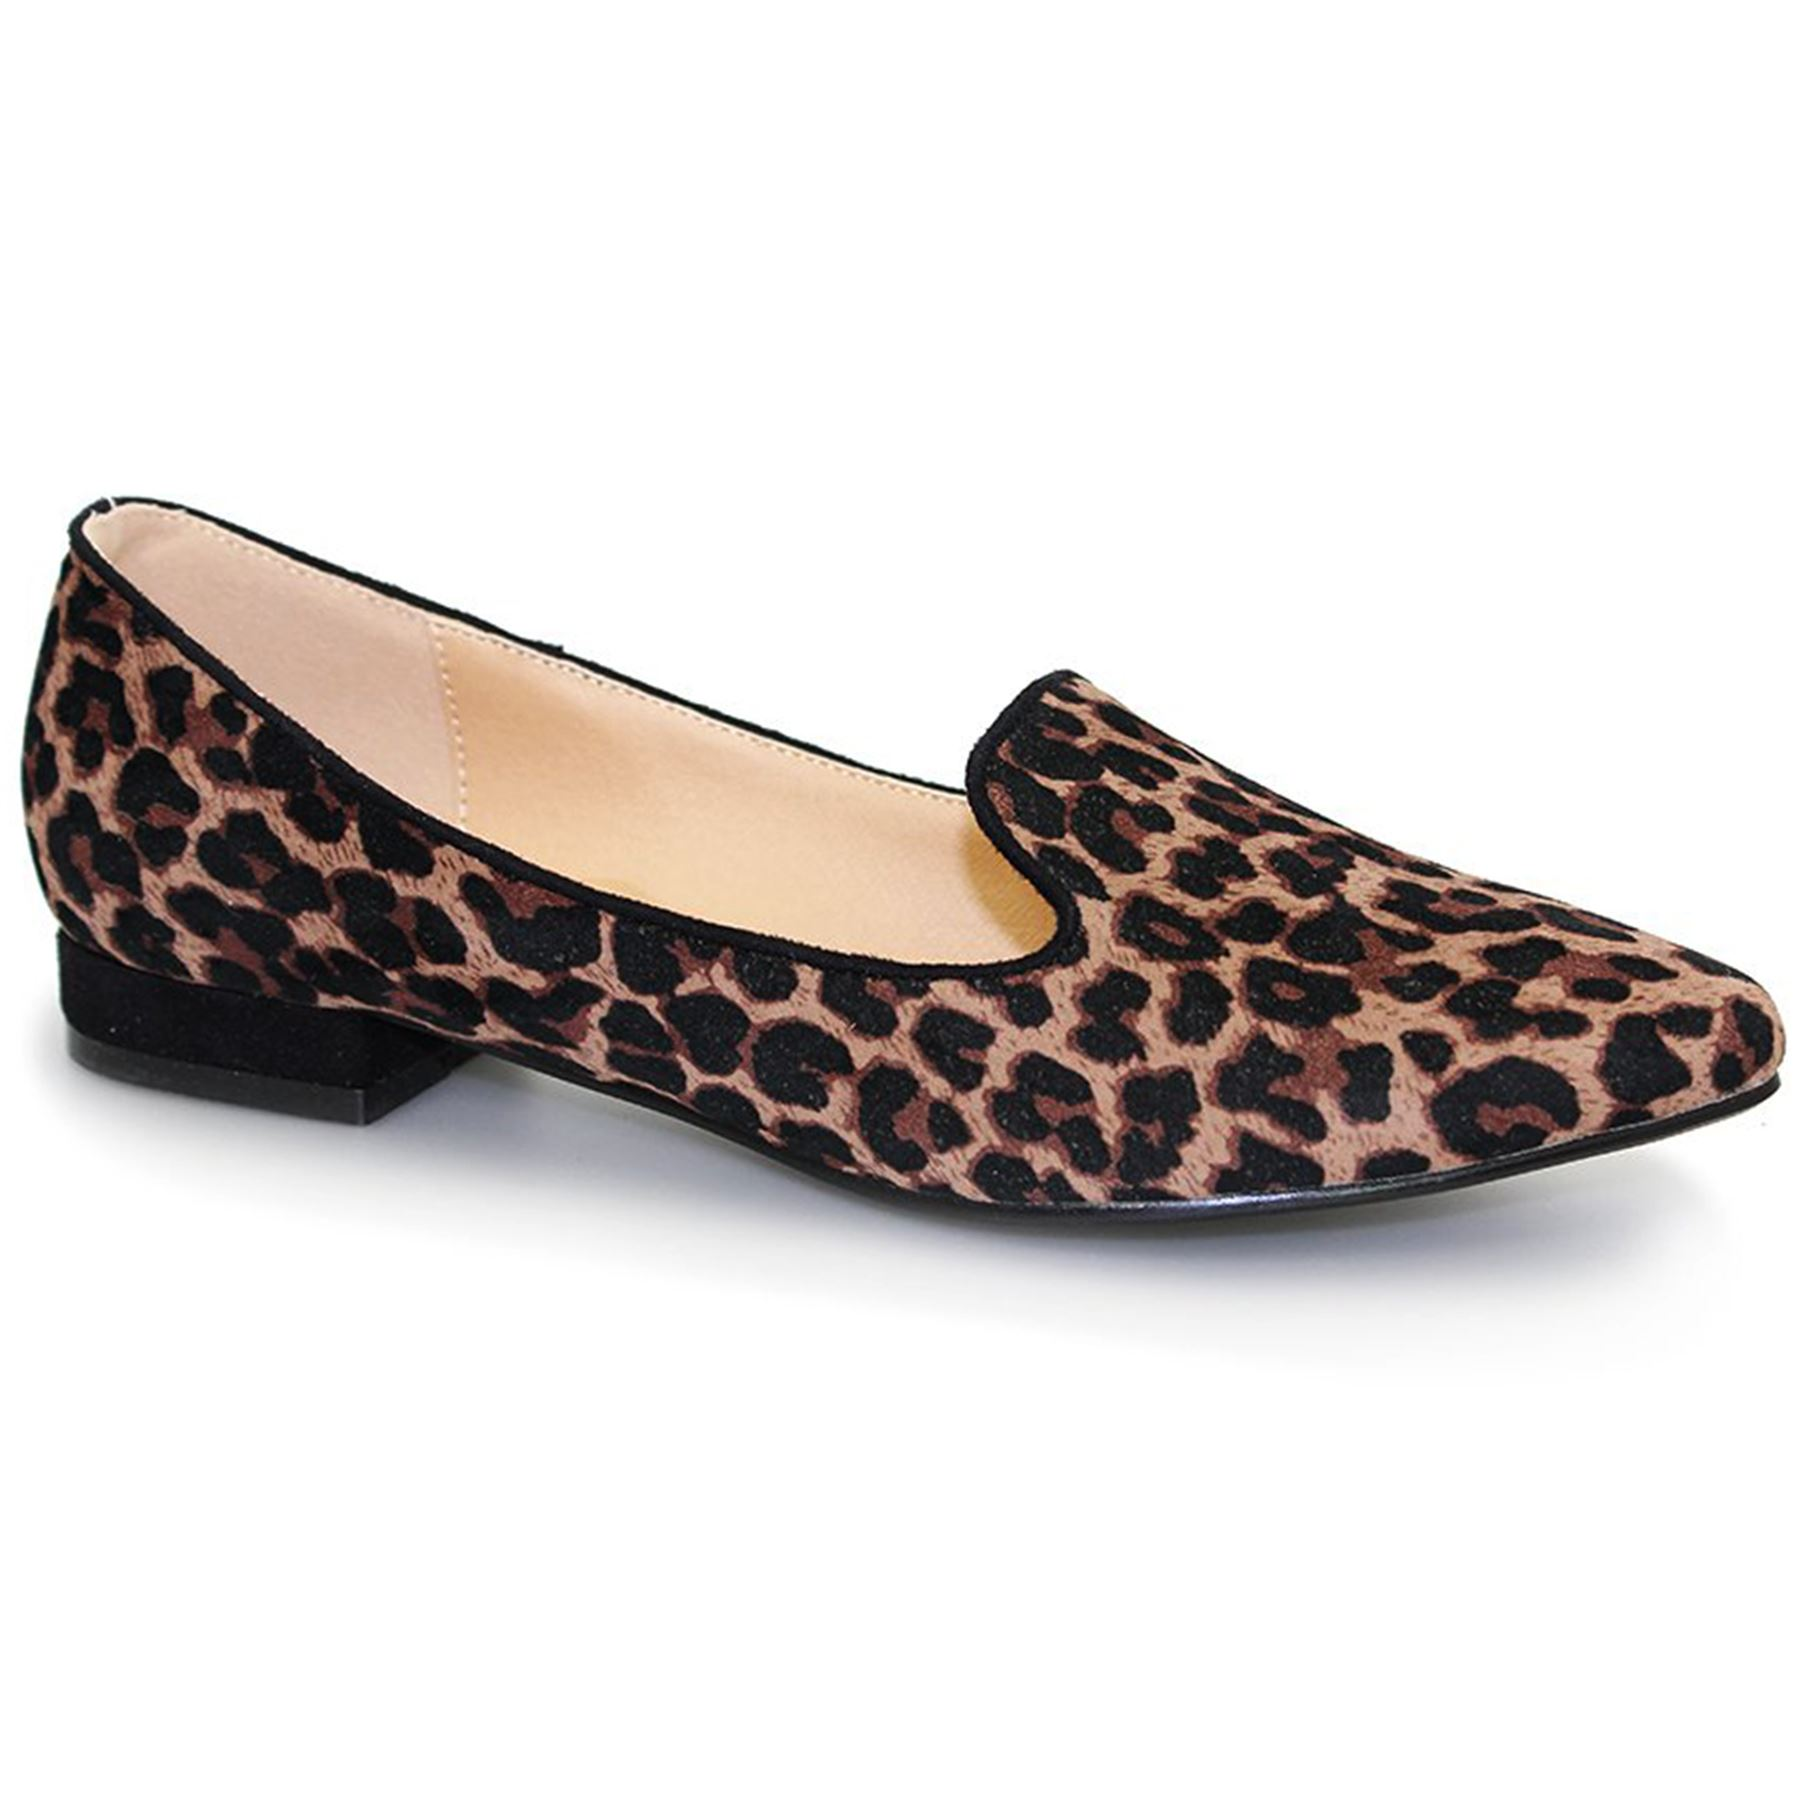 Suede fabric upper Leopard print Block heel Gold tone trim Gold buckle fastening Heel pull tab RI brand side zip fastening Heel height: 6cm Women. Shoes & boots. Brown leopard print .